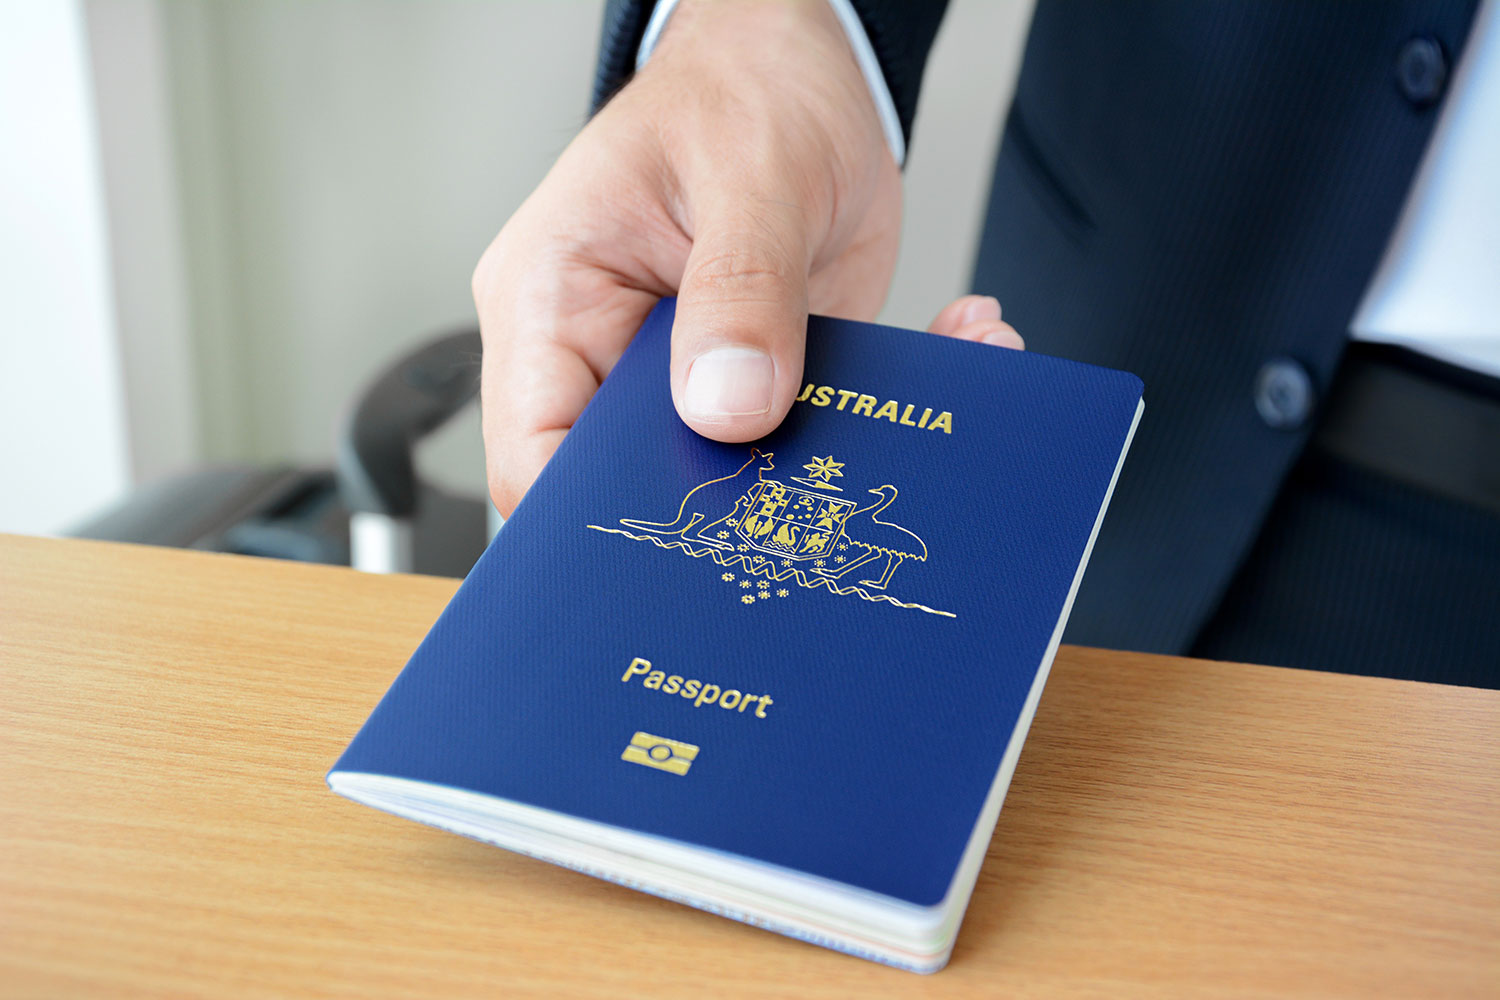 Limitations On Changing, Extending Or Adjusting Your Status After Entering On The Visa Waiver Program